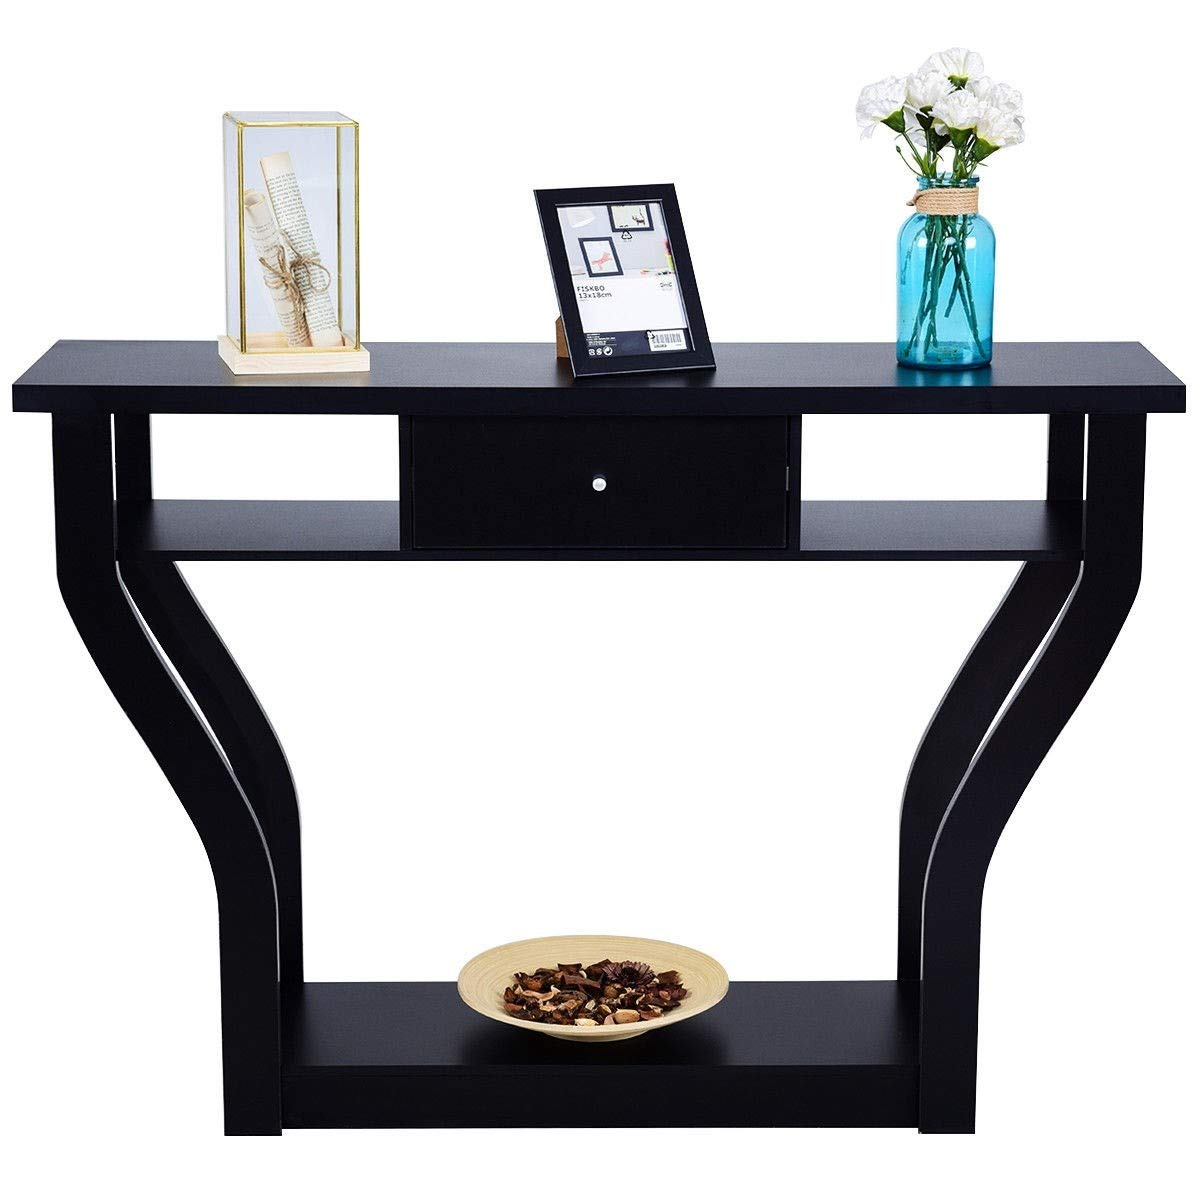 Modern Console Table,Entryway Table Sofa Table,Living Room Table with Drawer and Shelf by WATERJOY